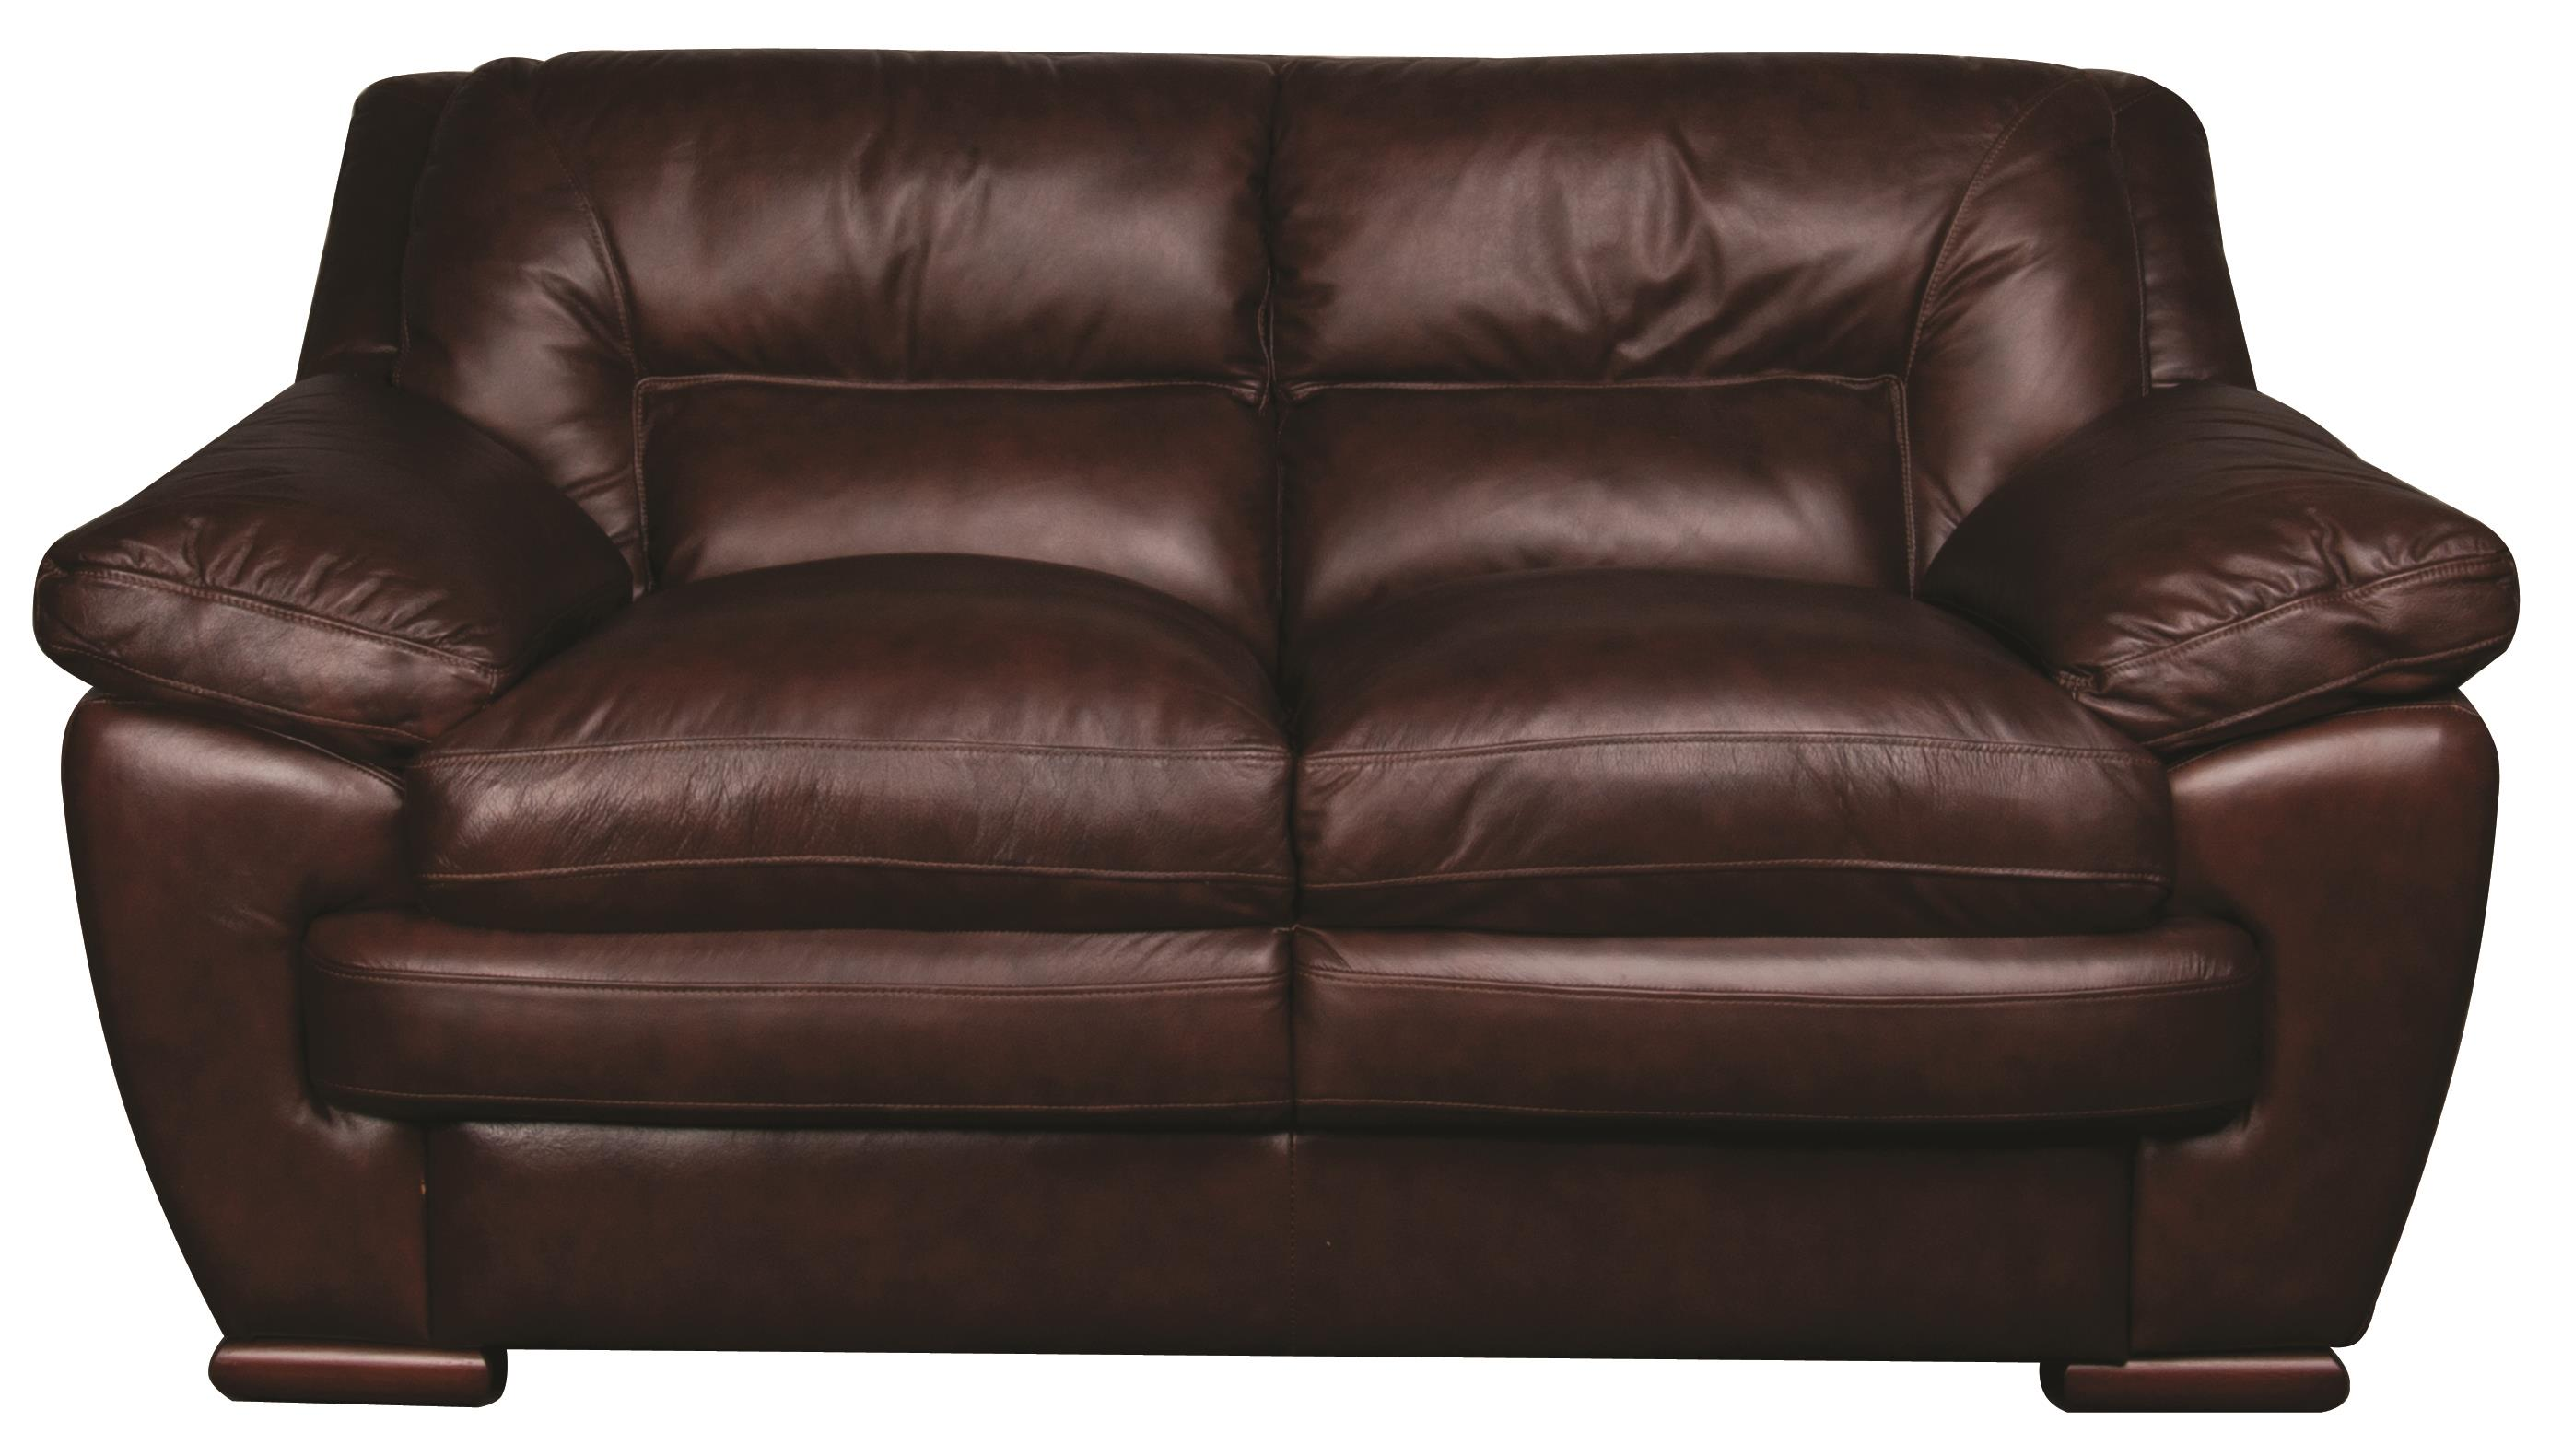 Morris Home Furnishings Austin Austin 100% Leather Loveseat - Item Number: 106826259